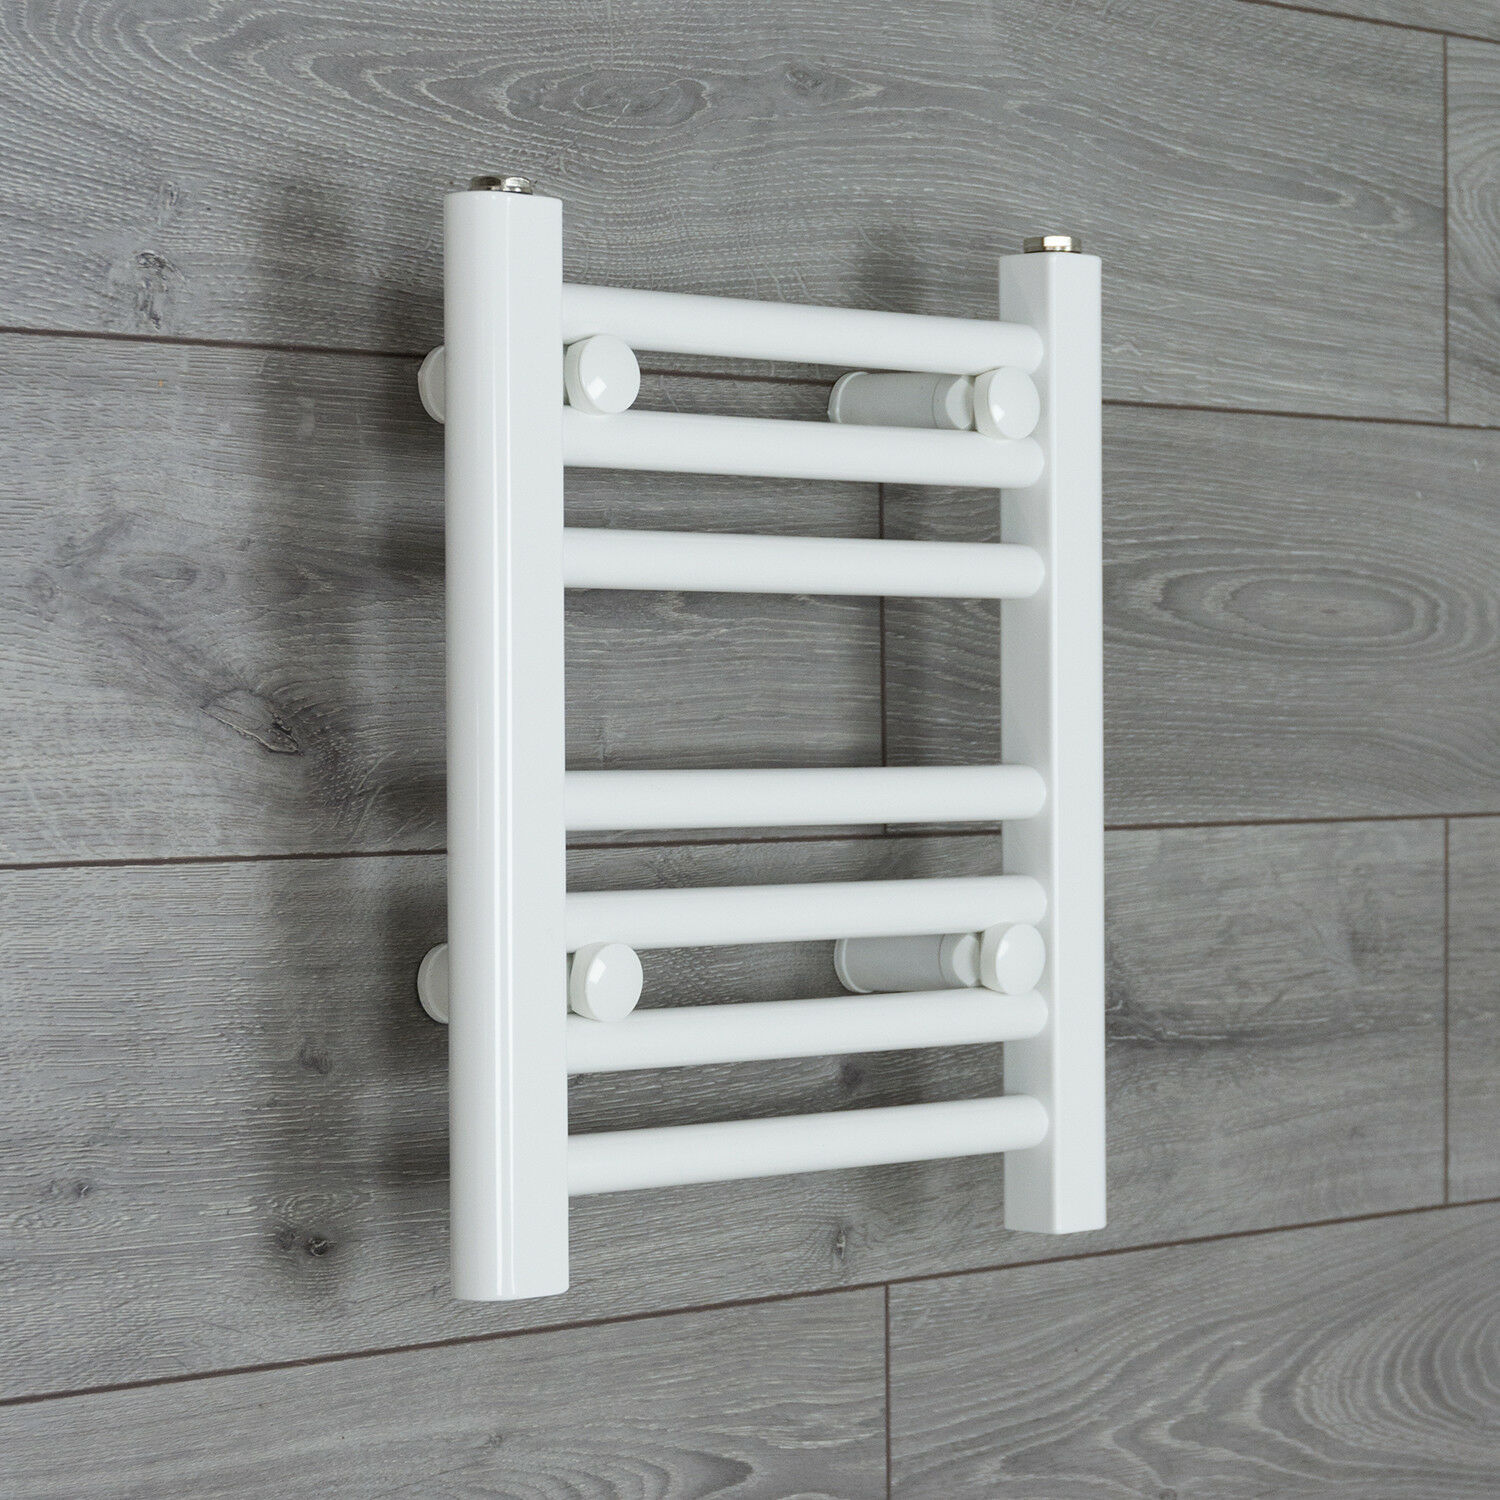 Ladder Heated Towel Rails: 350 Mm Wide White Ladder Heated Towel Rail Radiator